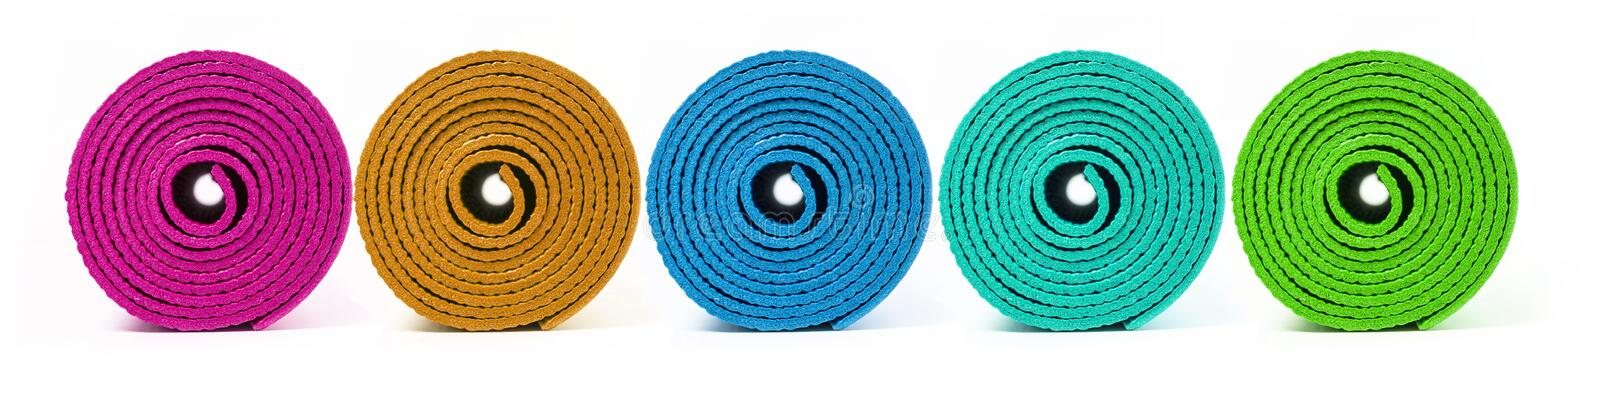 Rolled up yoga mat royalty free stock photography